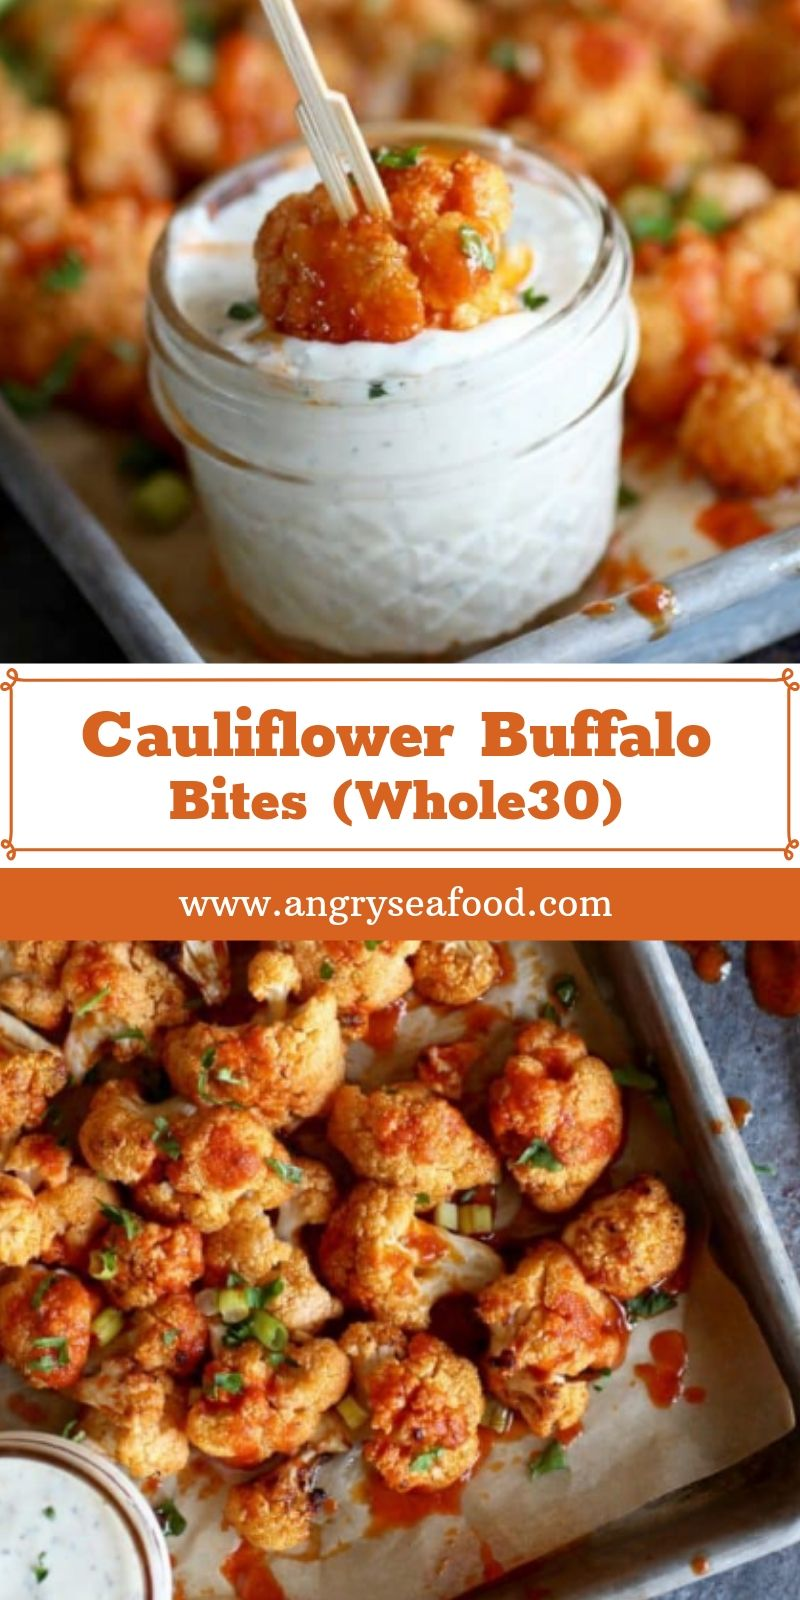 Cauliflower Buffalo Bites (Whole30)